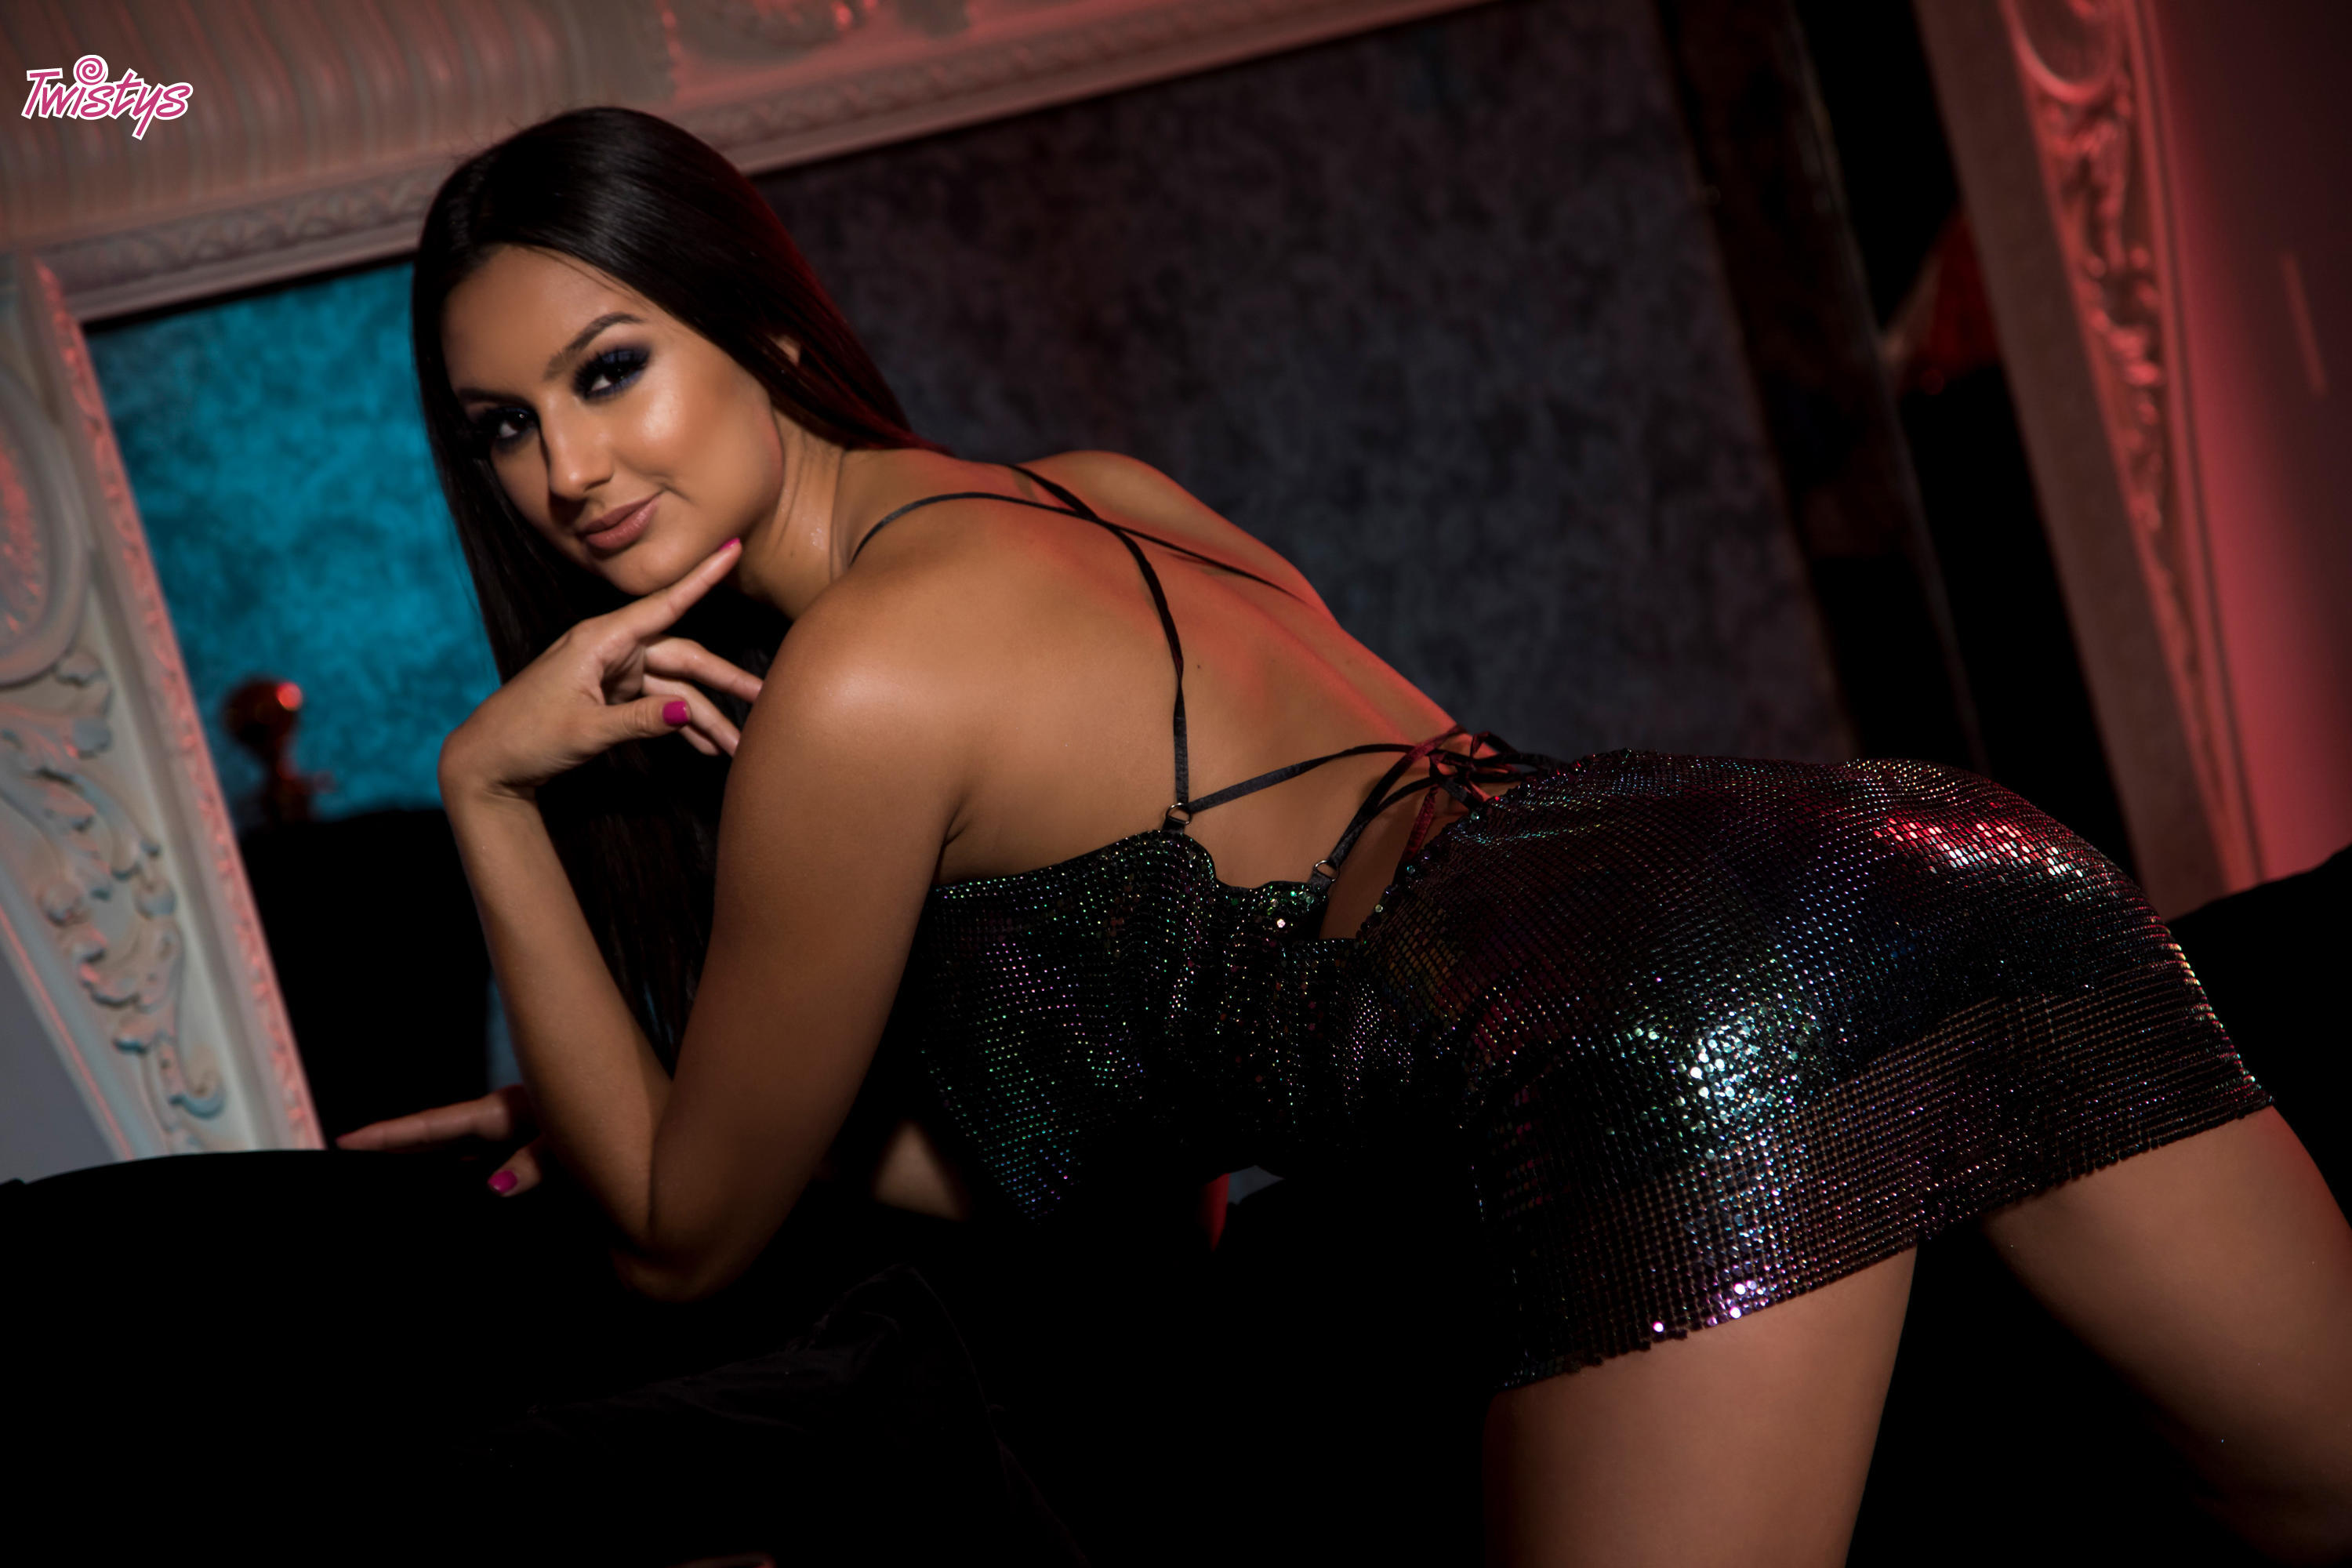 Twistys 'Glitter Nightclub' starring Eliza Ibarra (Photo 18)